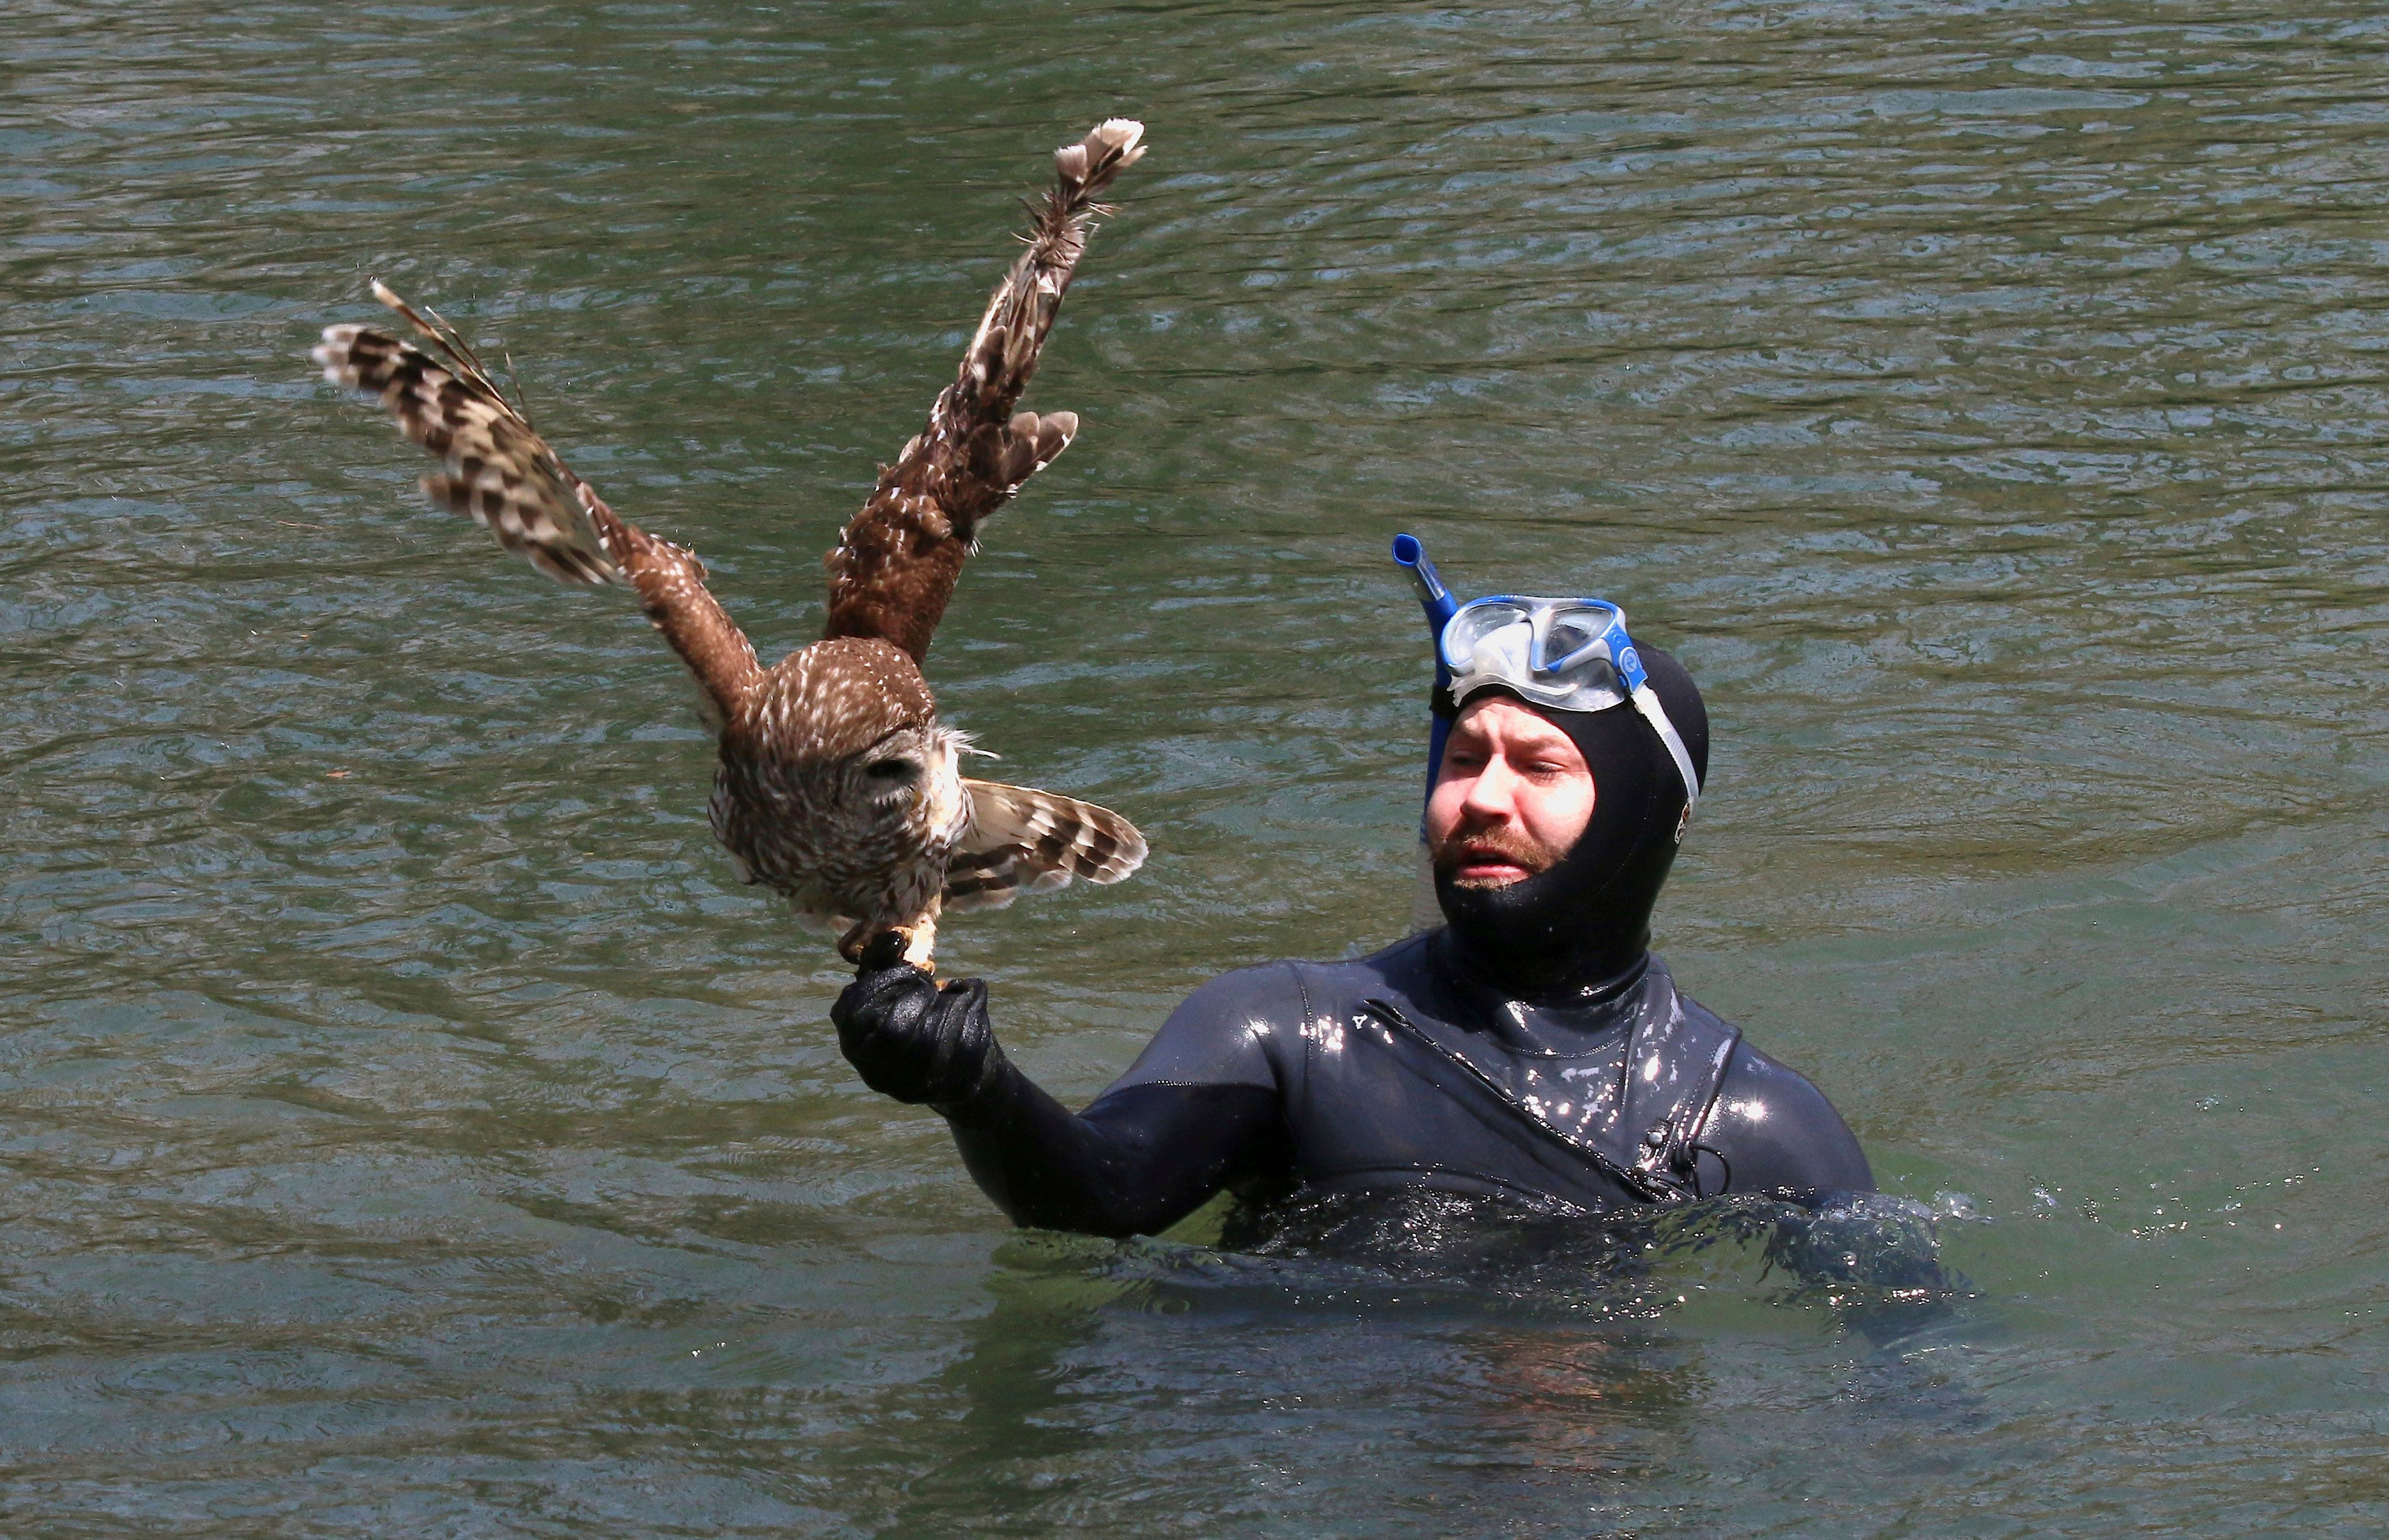 In this April 6, 2019 photo provided by Bill Hulsebus, a snorkeler, Jonathan Knapp holds a barred owl that was caught in fishing line in a tree at the Springfield Conservation Nature Center in Springfield, Mo. The owl caught a lucky break when a Knapp banded with wildlife officials to rescue the bird from the fishing line tangled in trees above the James River. (Bill Hulsebus via AP)